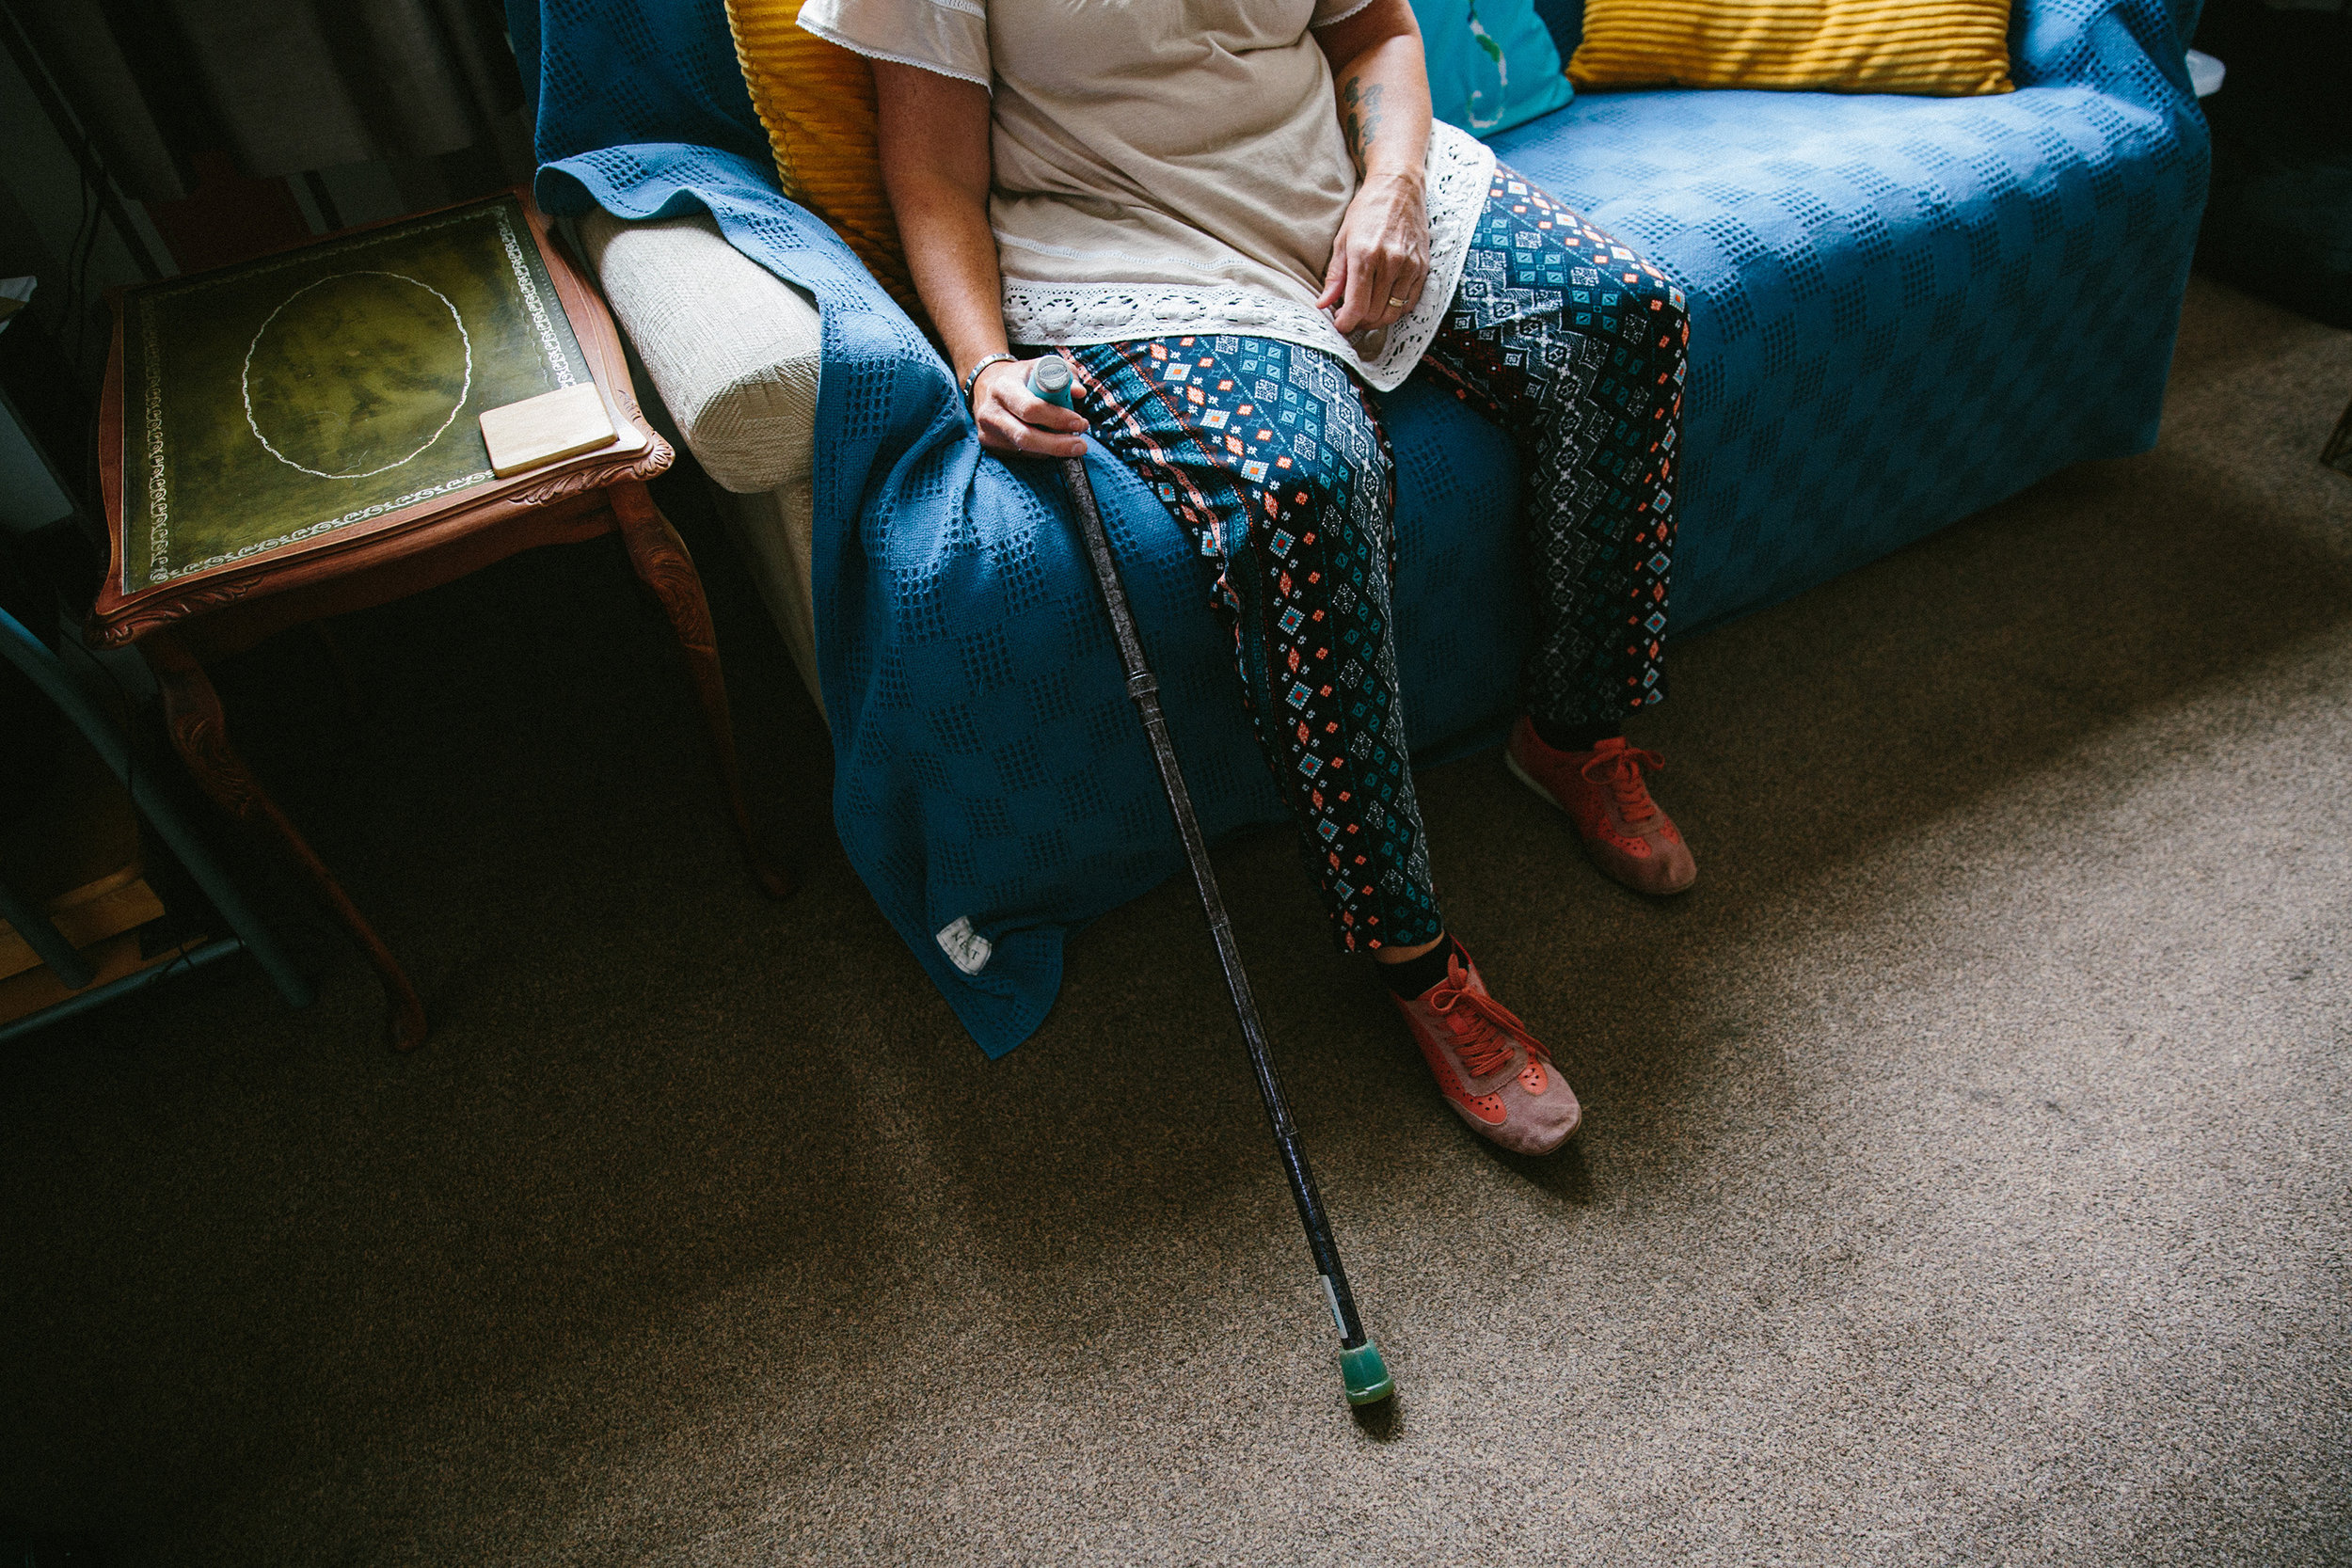 After nearly 13 years Jackie is unable to walk long distances, or to sit for any length of time. She relies on a stick daily, and has to use a mobility scooter for long journeys